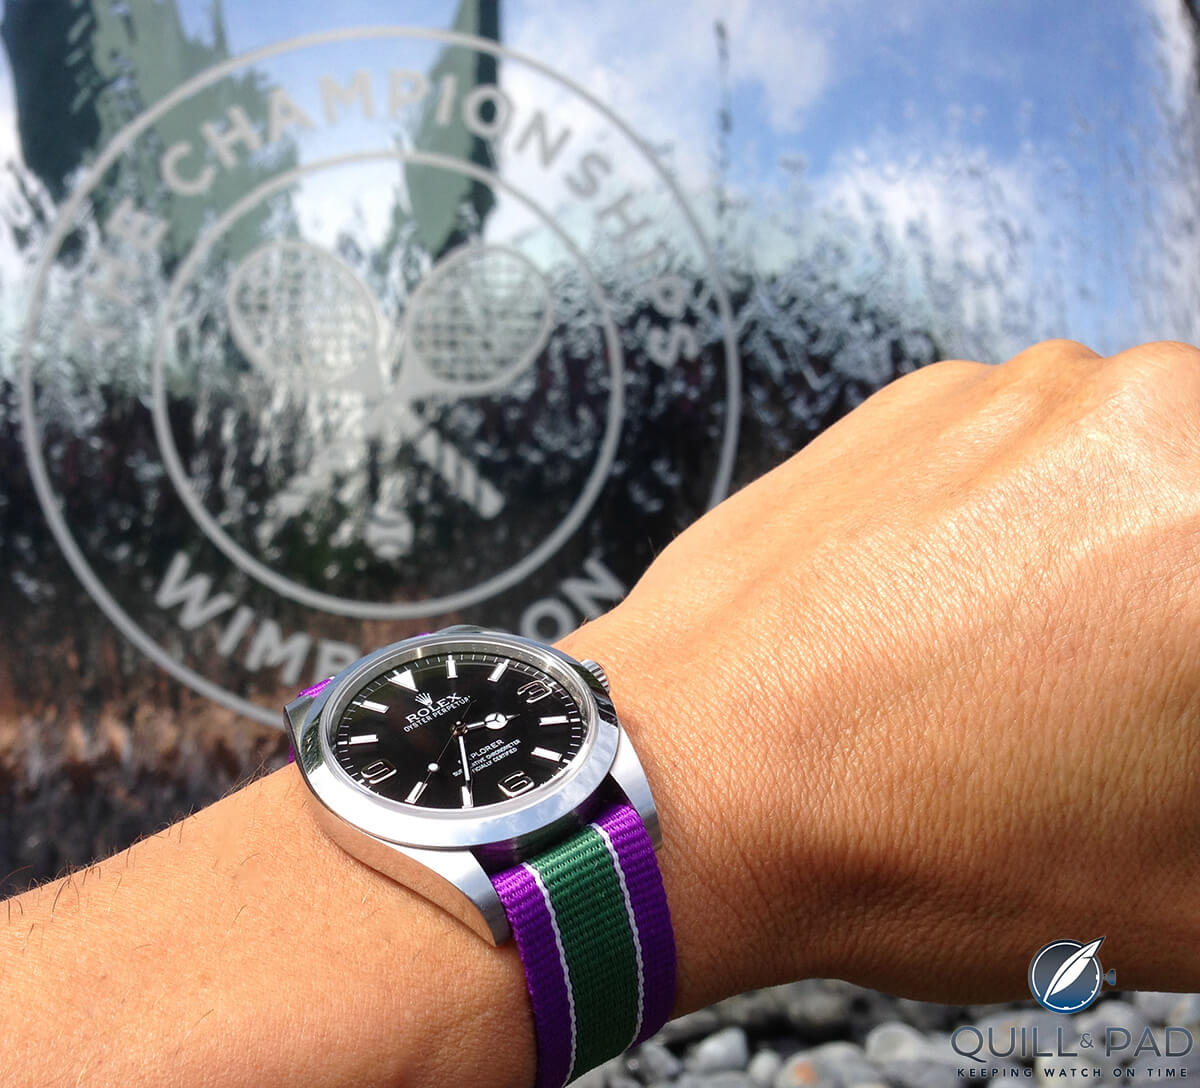 The 39 mm Rolex Oyster Perpetual Explorer on Wimbledon-colored Nato strap at Wimbledon (photo courtesy Miguel Seabra)